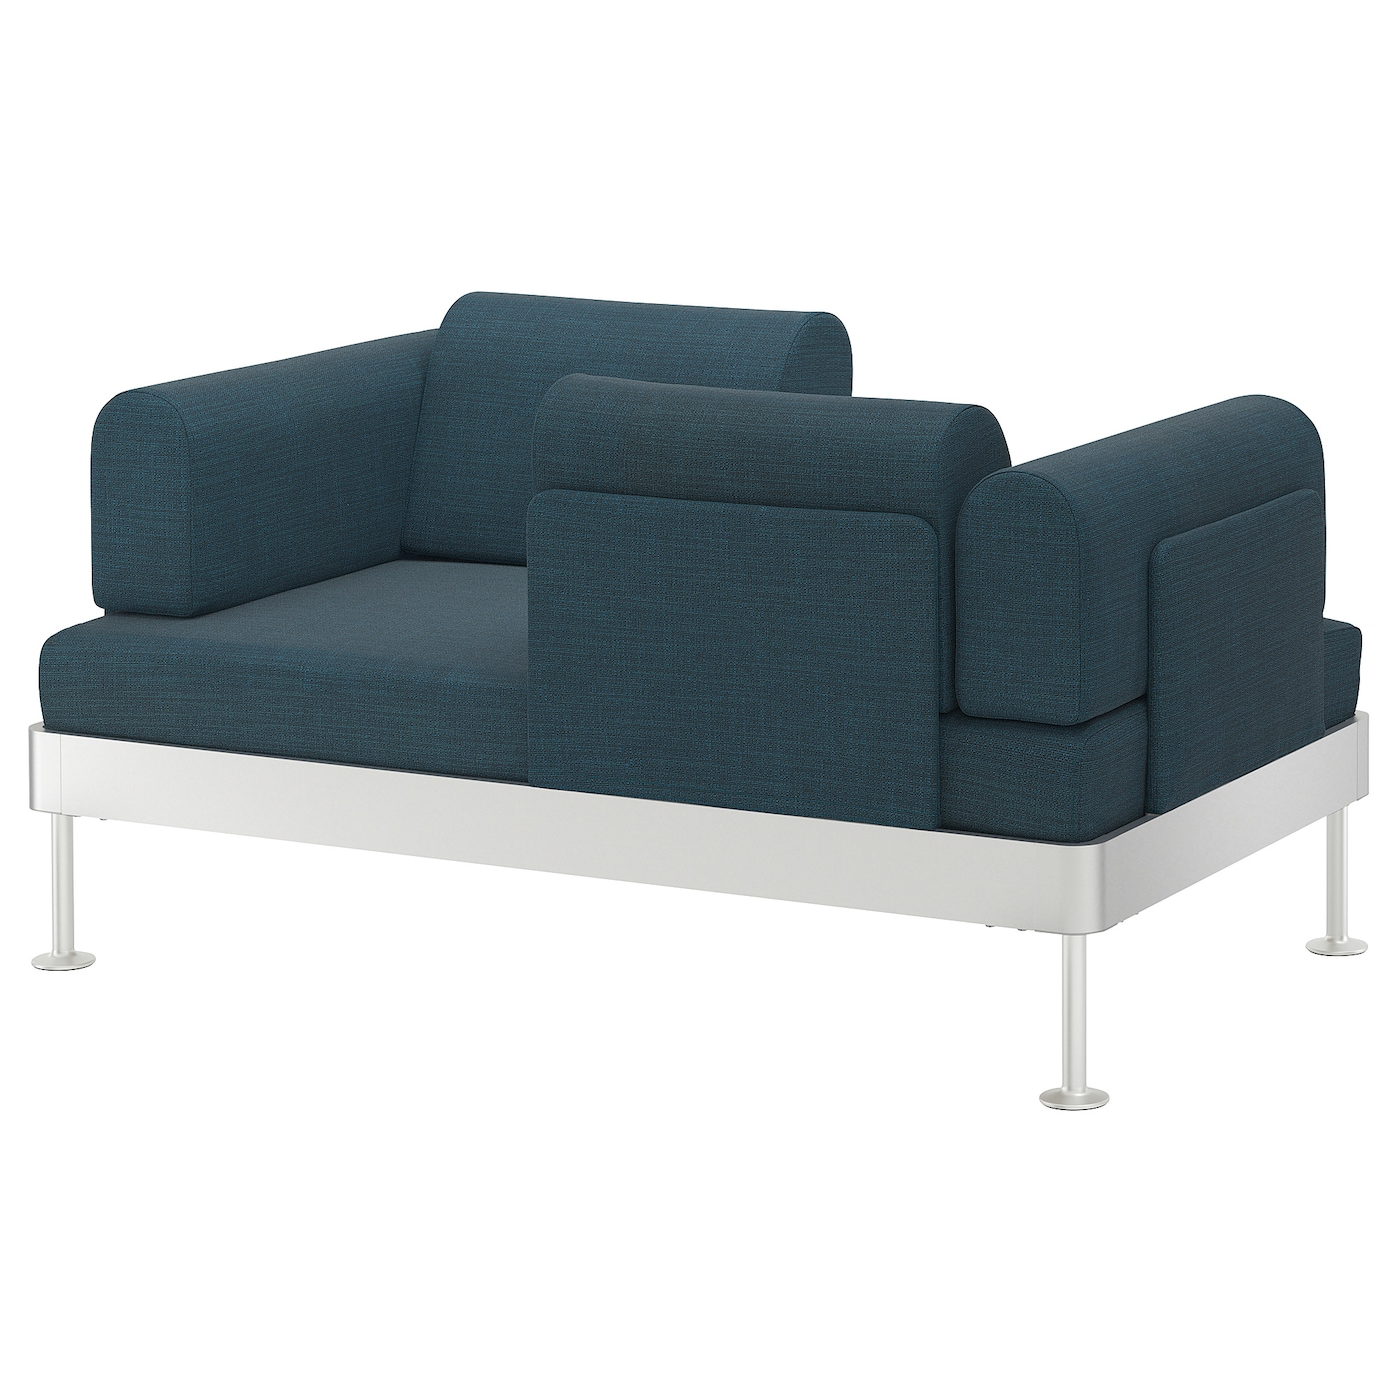 Merveilleux IKEA DELAKTIG 2 Seat Sofa The Cover Is Easy To Keep Clean As It Is